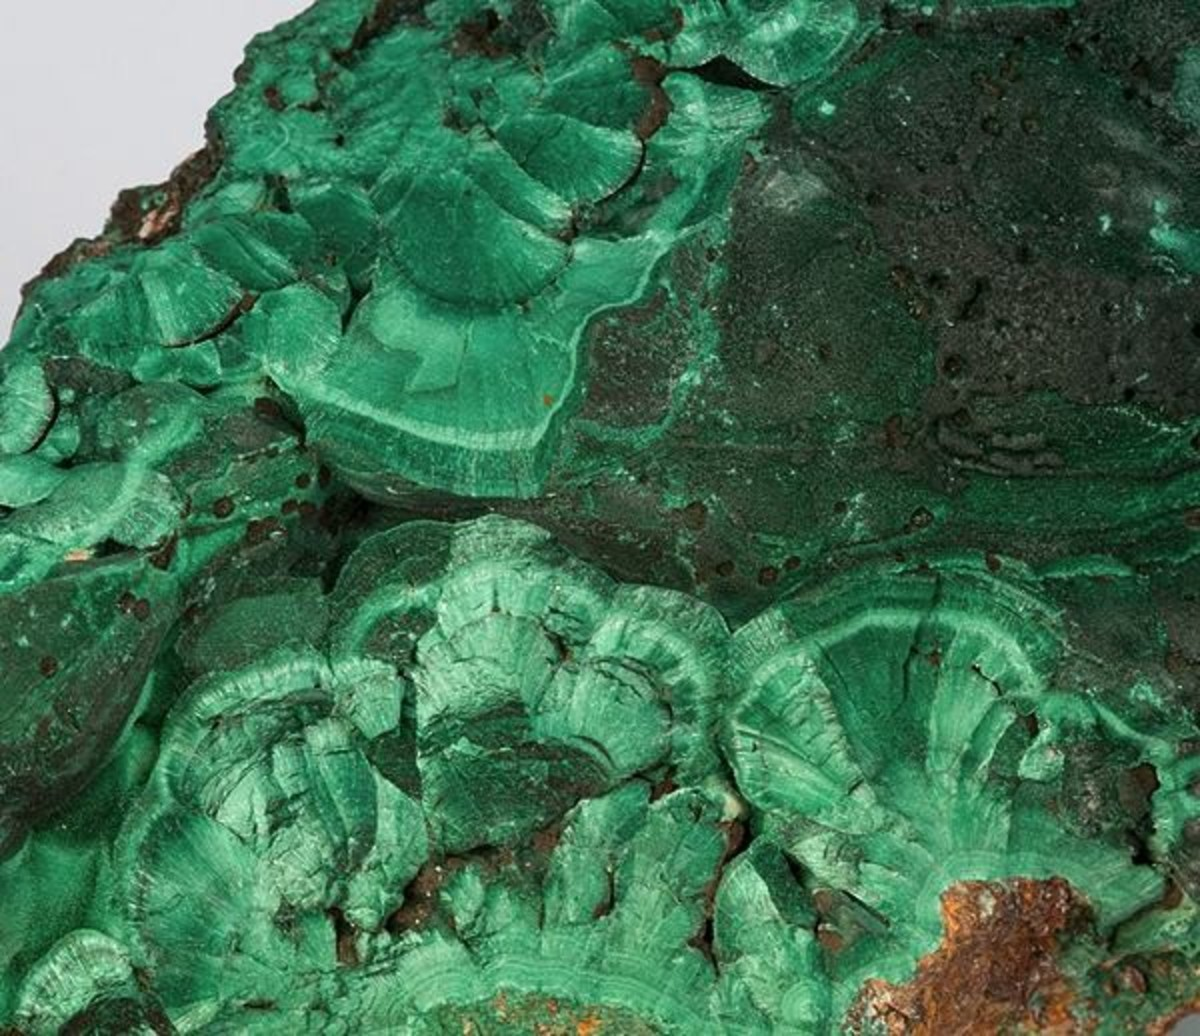 Chatoyant Malachite from Bisbee, Arizona